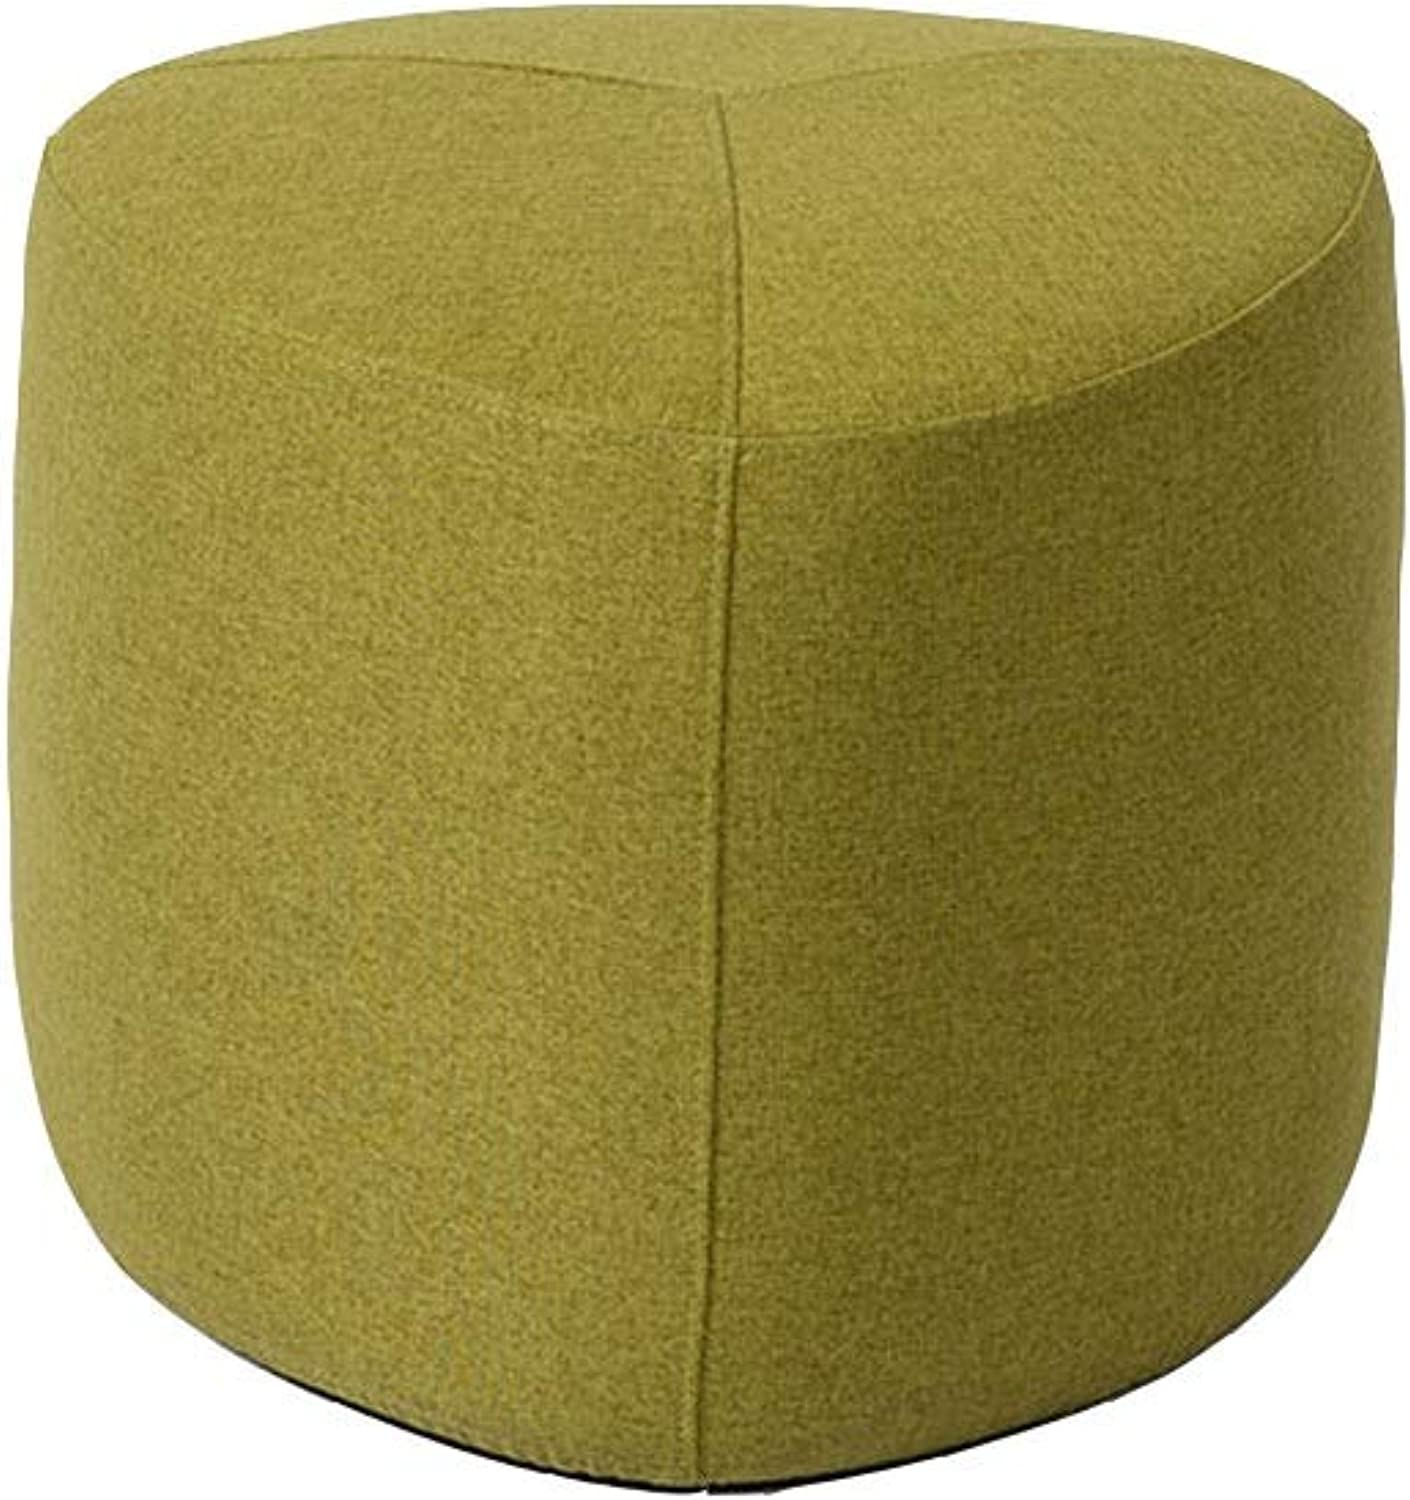 Footstools Pouf Upholstered Footrest Green Yellow Removable Linen Cover Pouffe Chair Foot Stool for Living Room   Bedroom (Size   45cm45cm38cm)